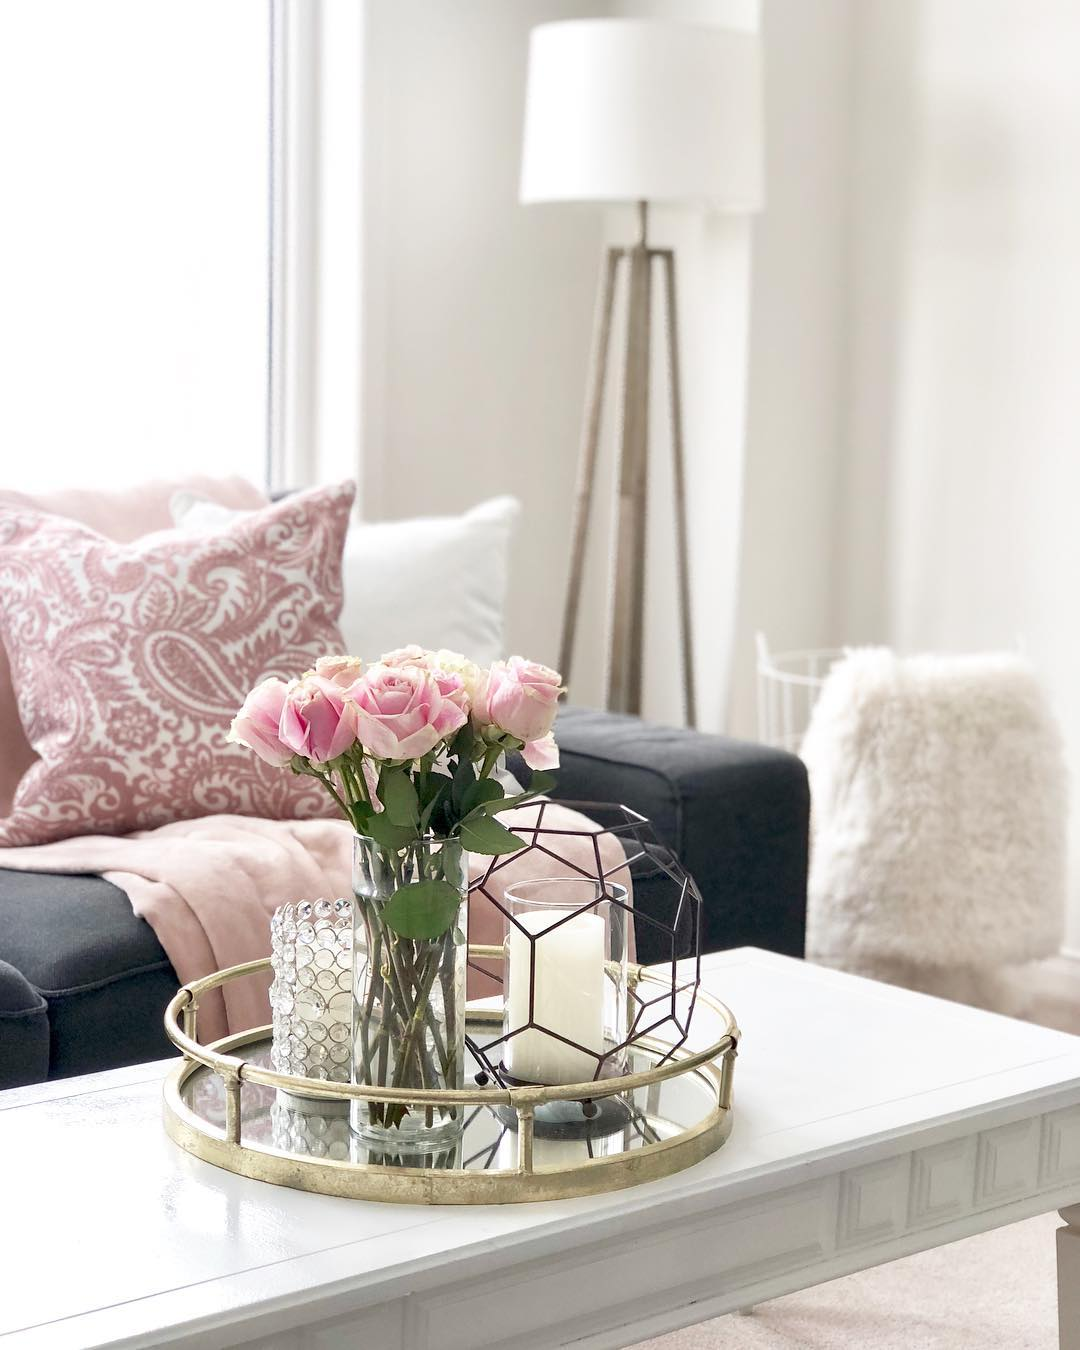 Charming Fresh Flowers For Side Table